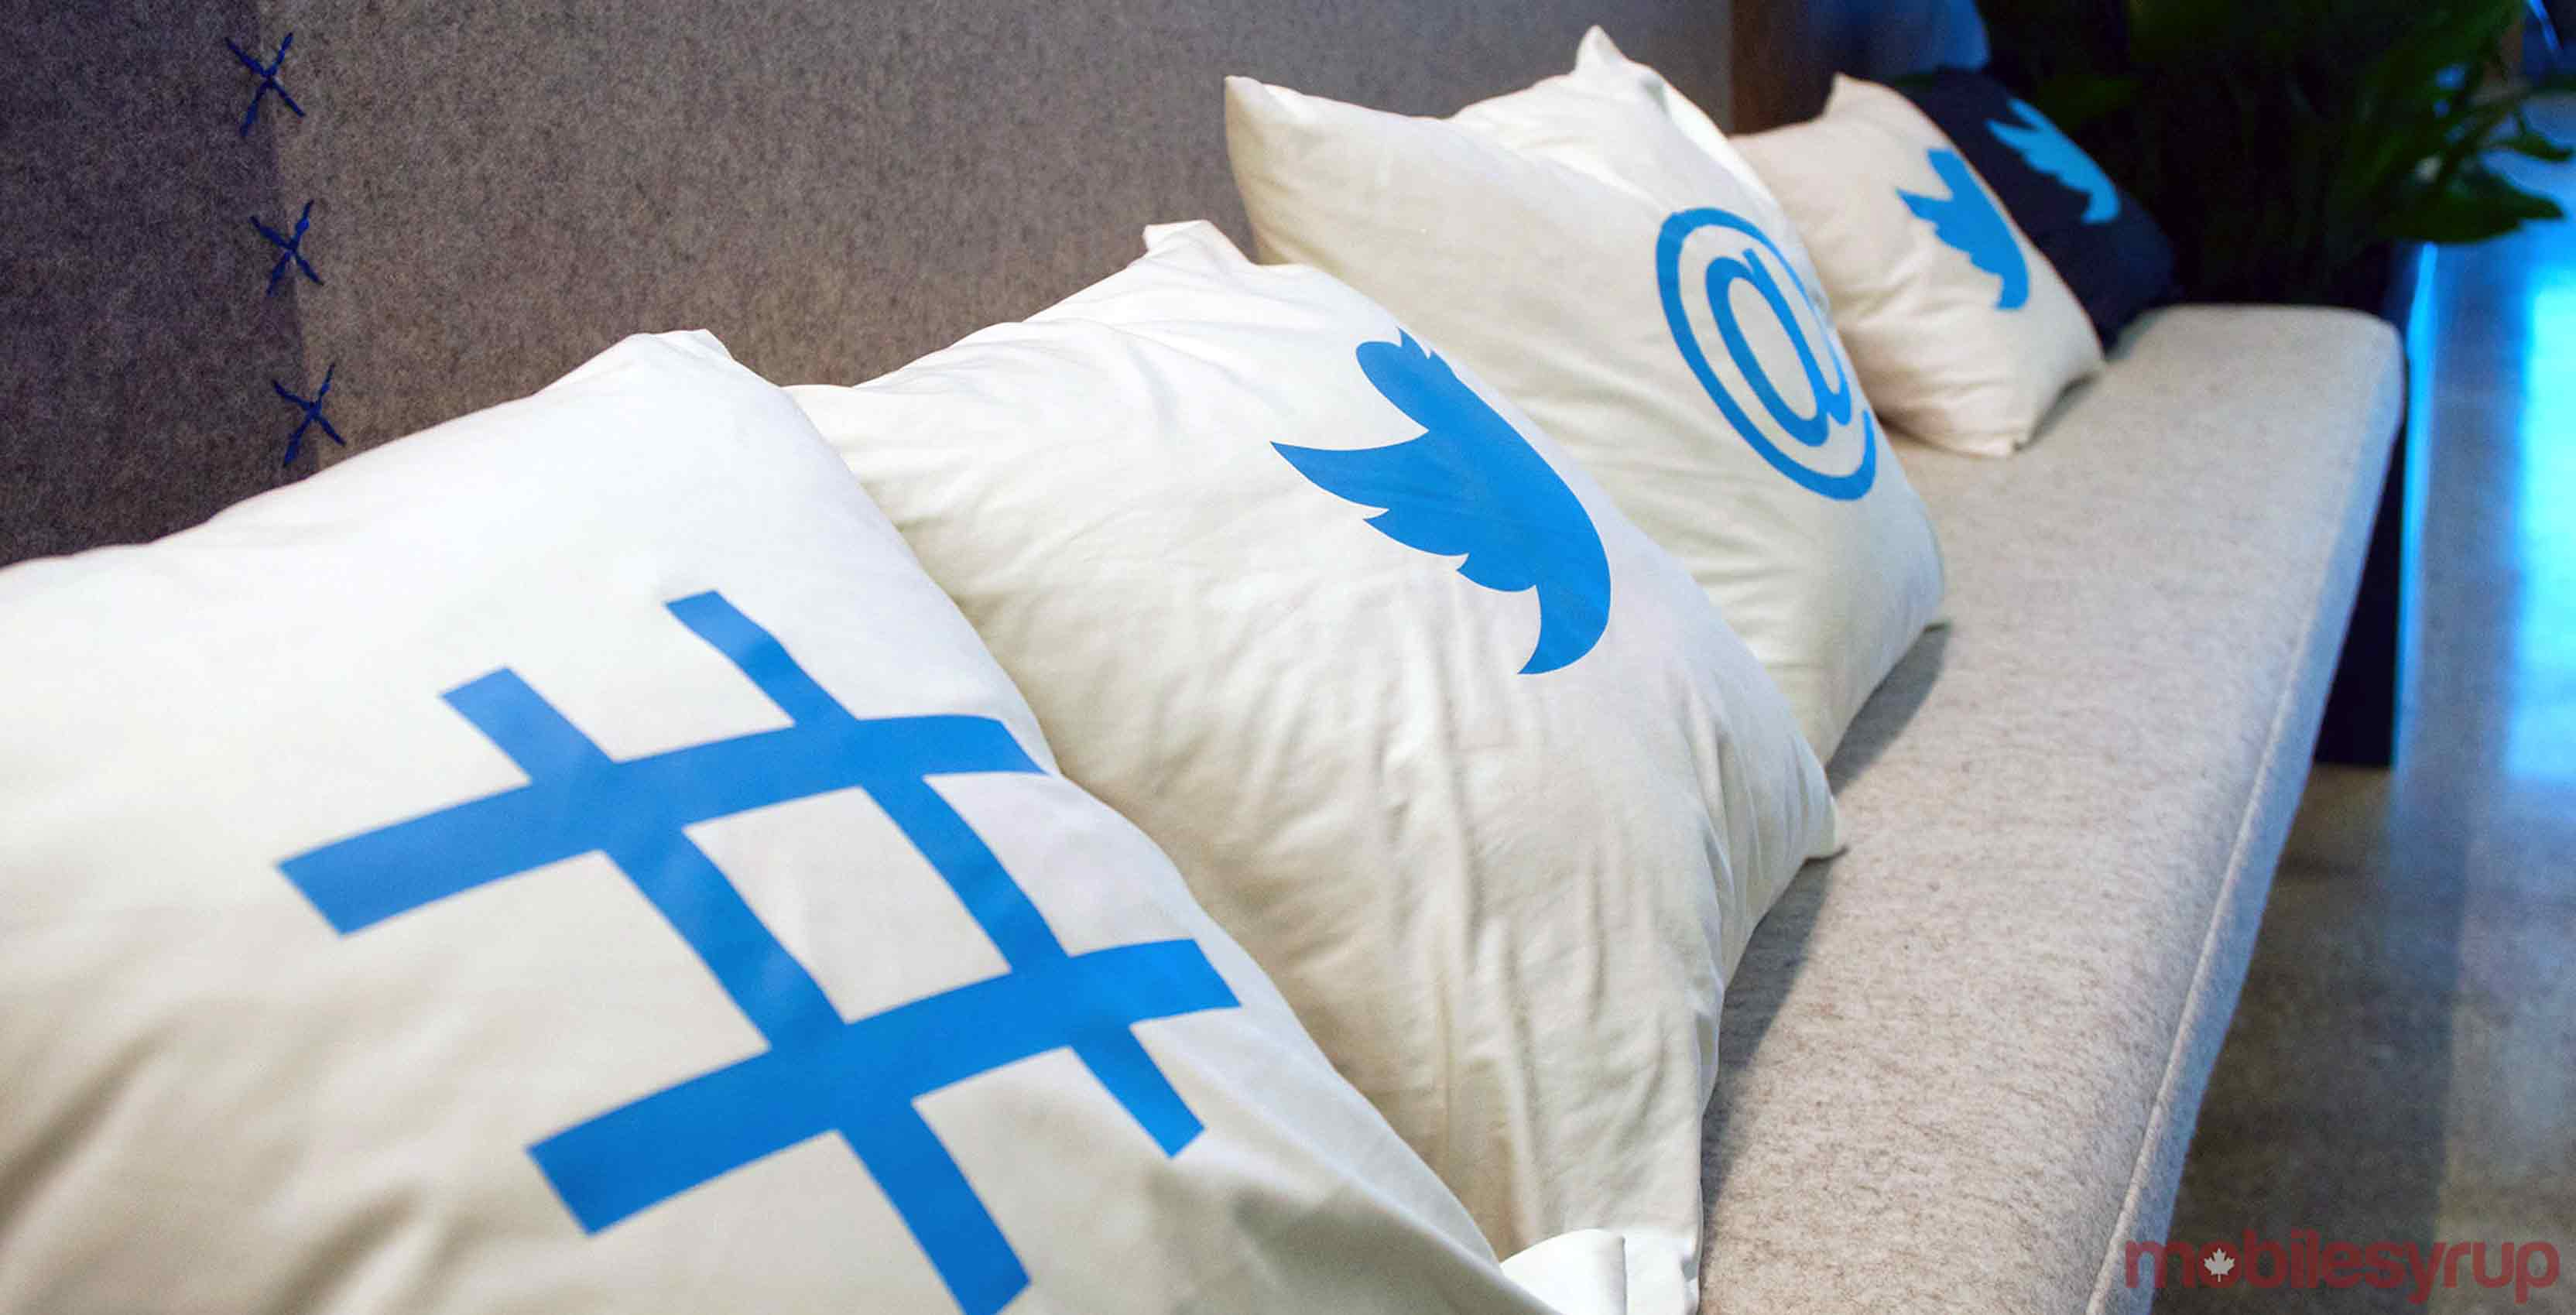 A collection of pillows featuring popular Twitter icons